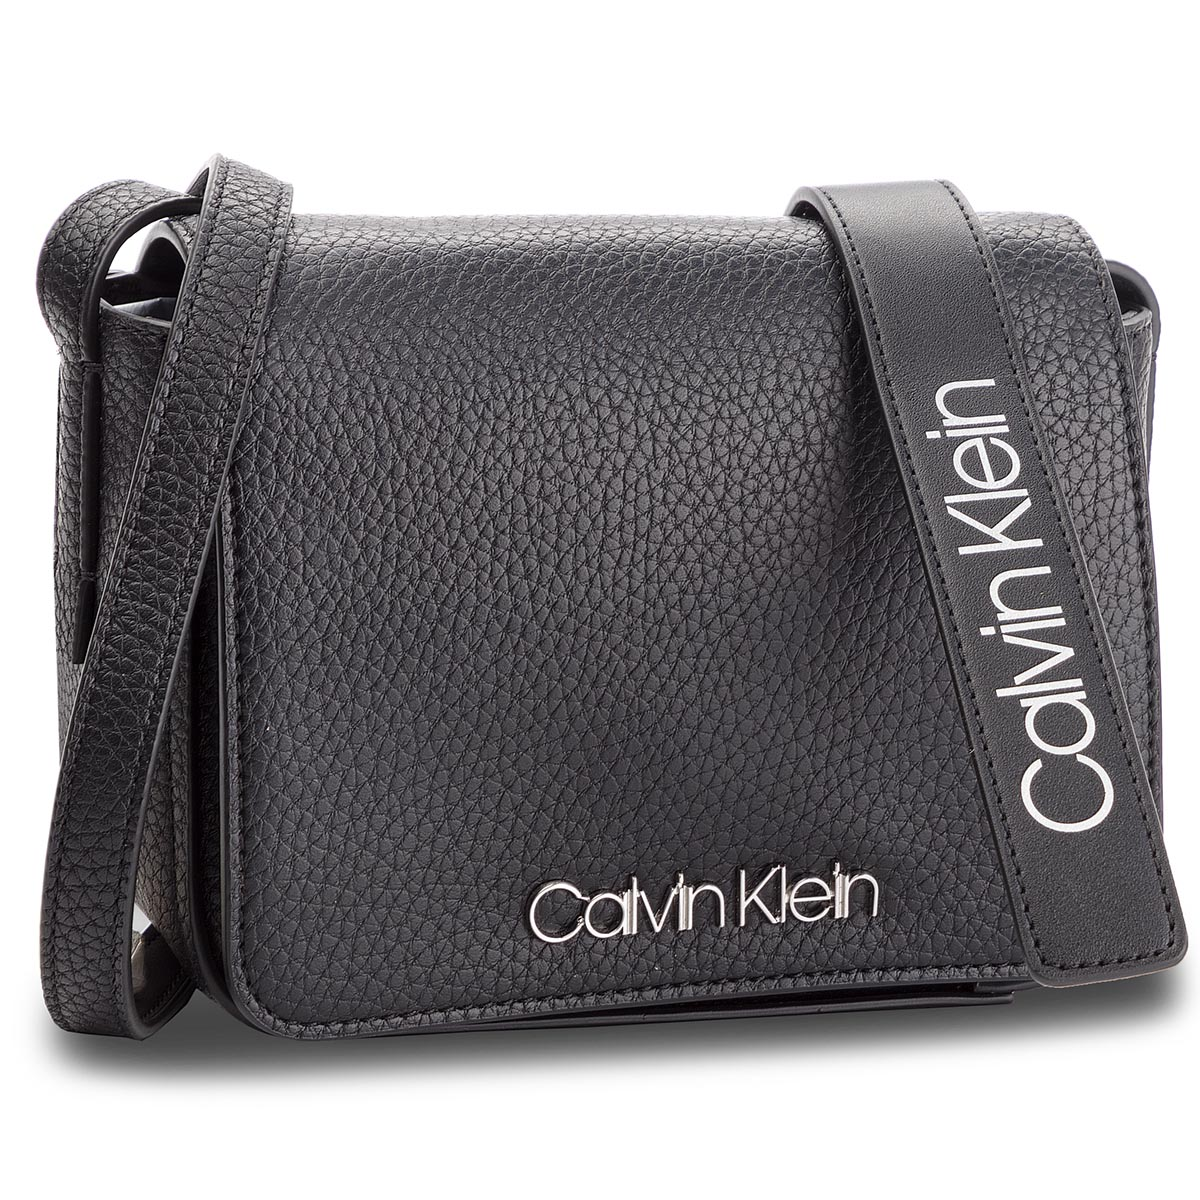 Geantă CALVIN KLEIN - Ck Base Small Crossbody K60K604425 001